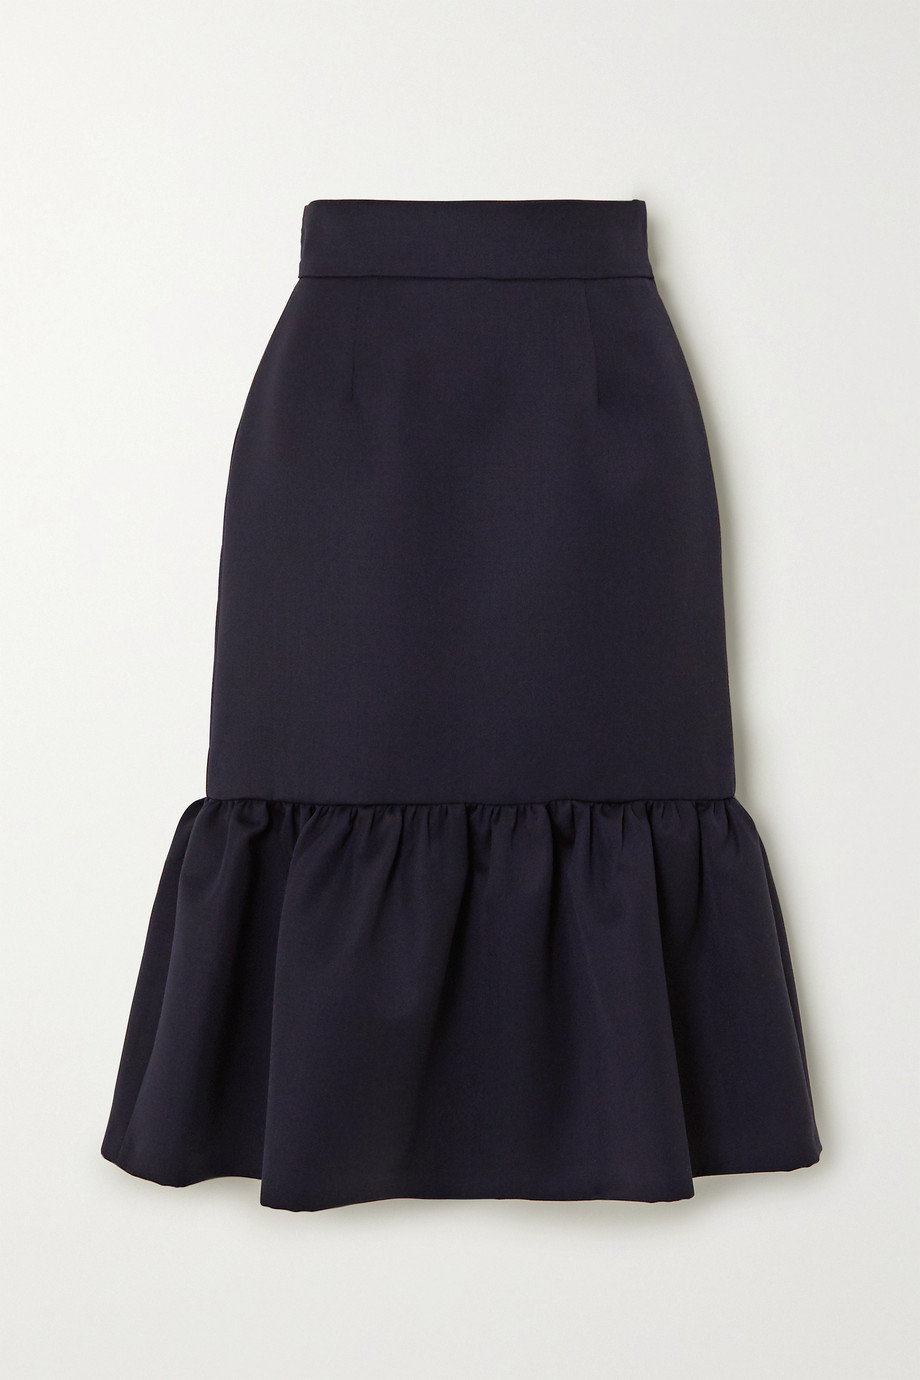 Miu Miu Ruffled wool skirt